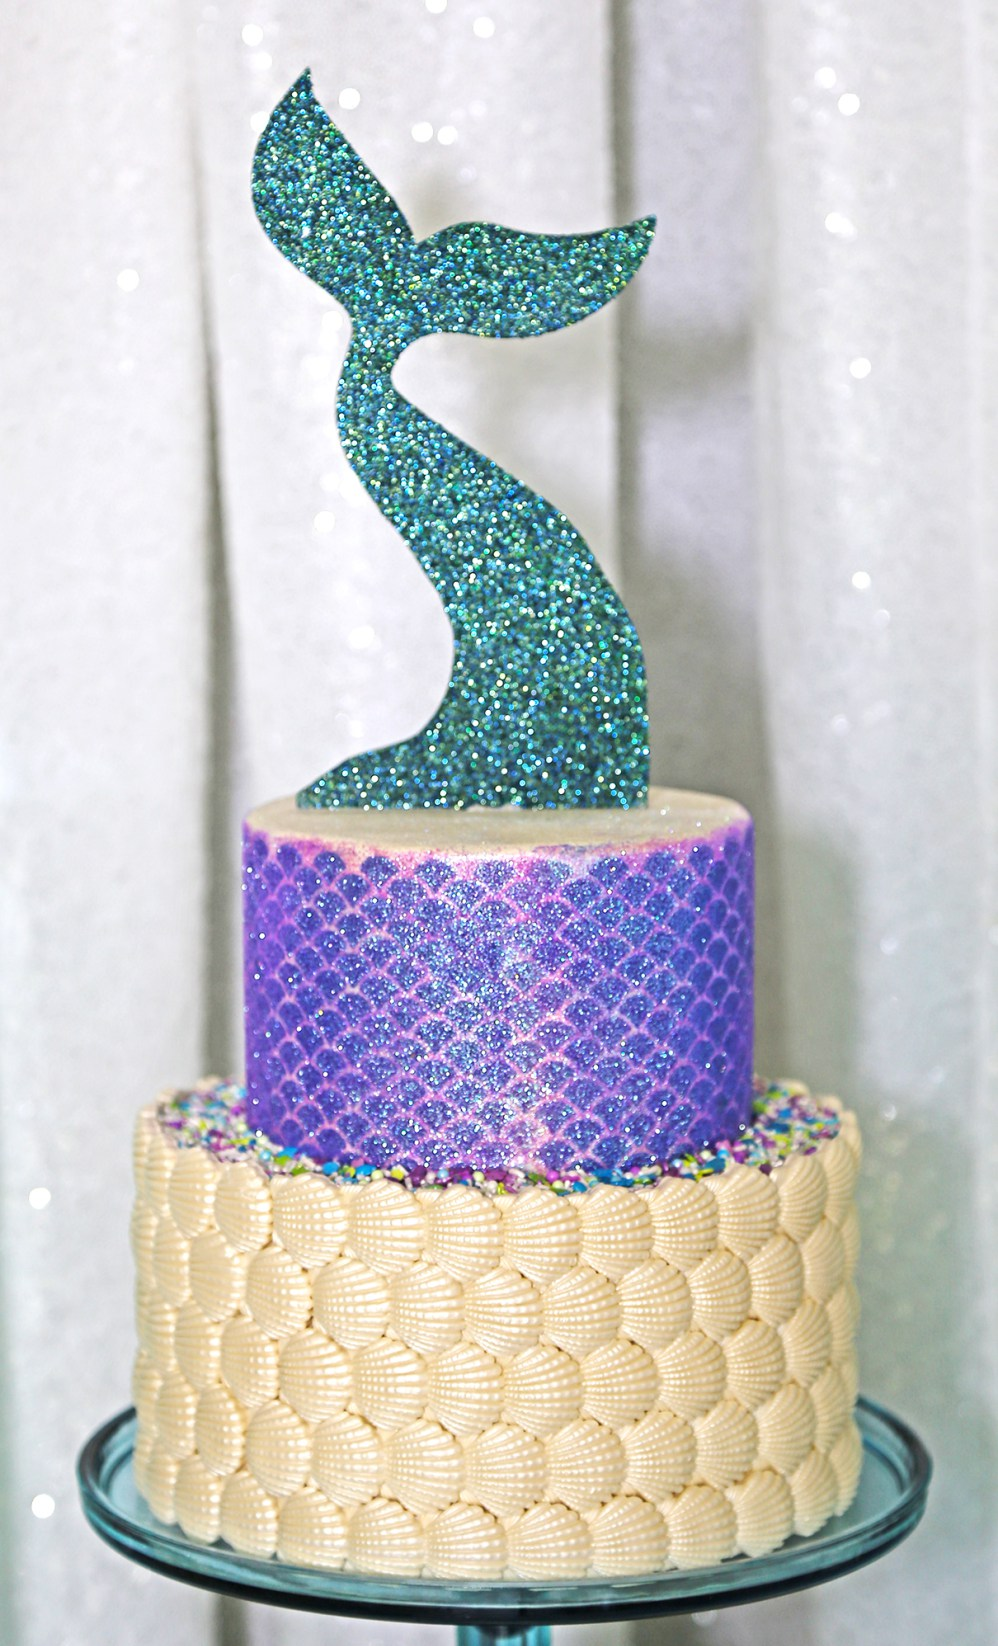 mermaid-party-supplies-cake-vertical.jpg